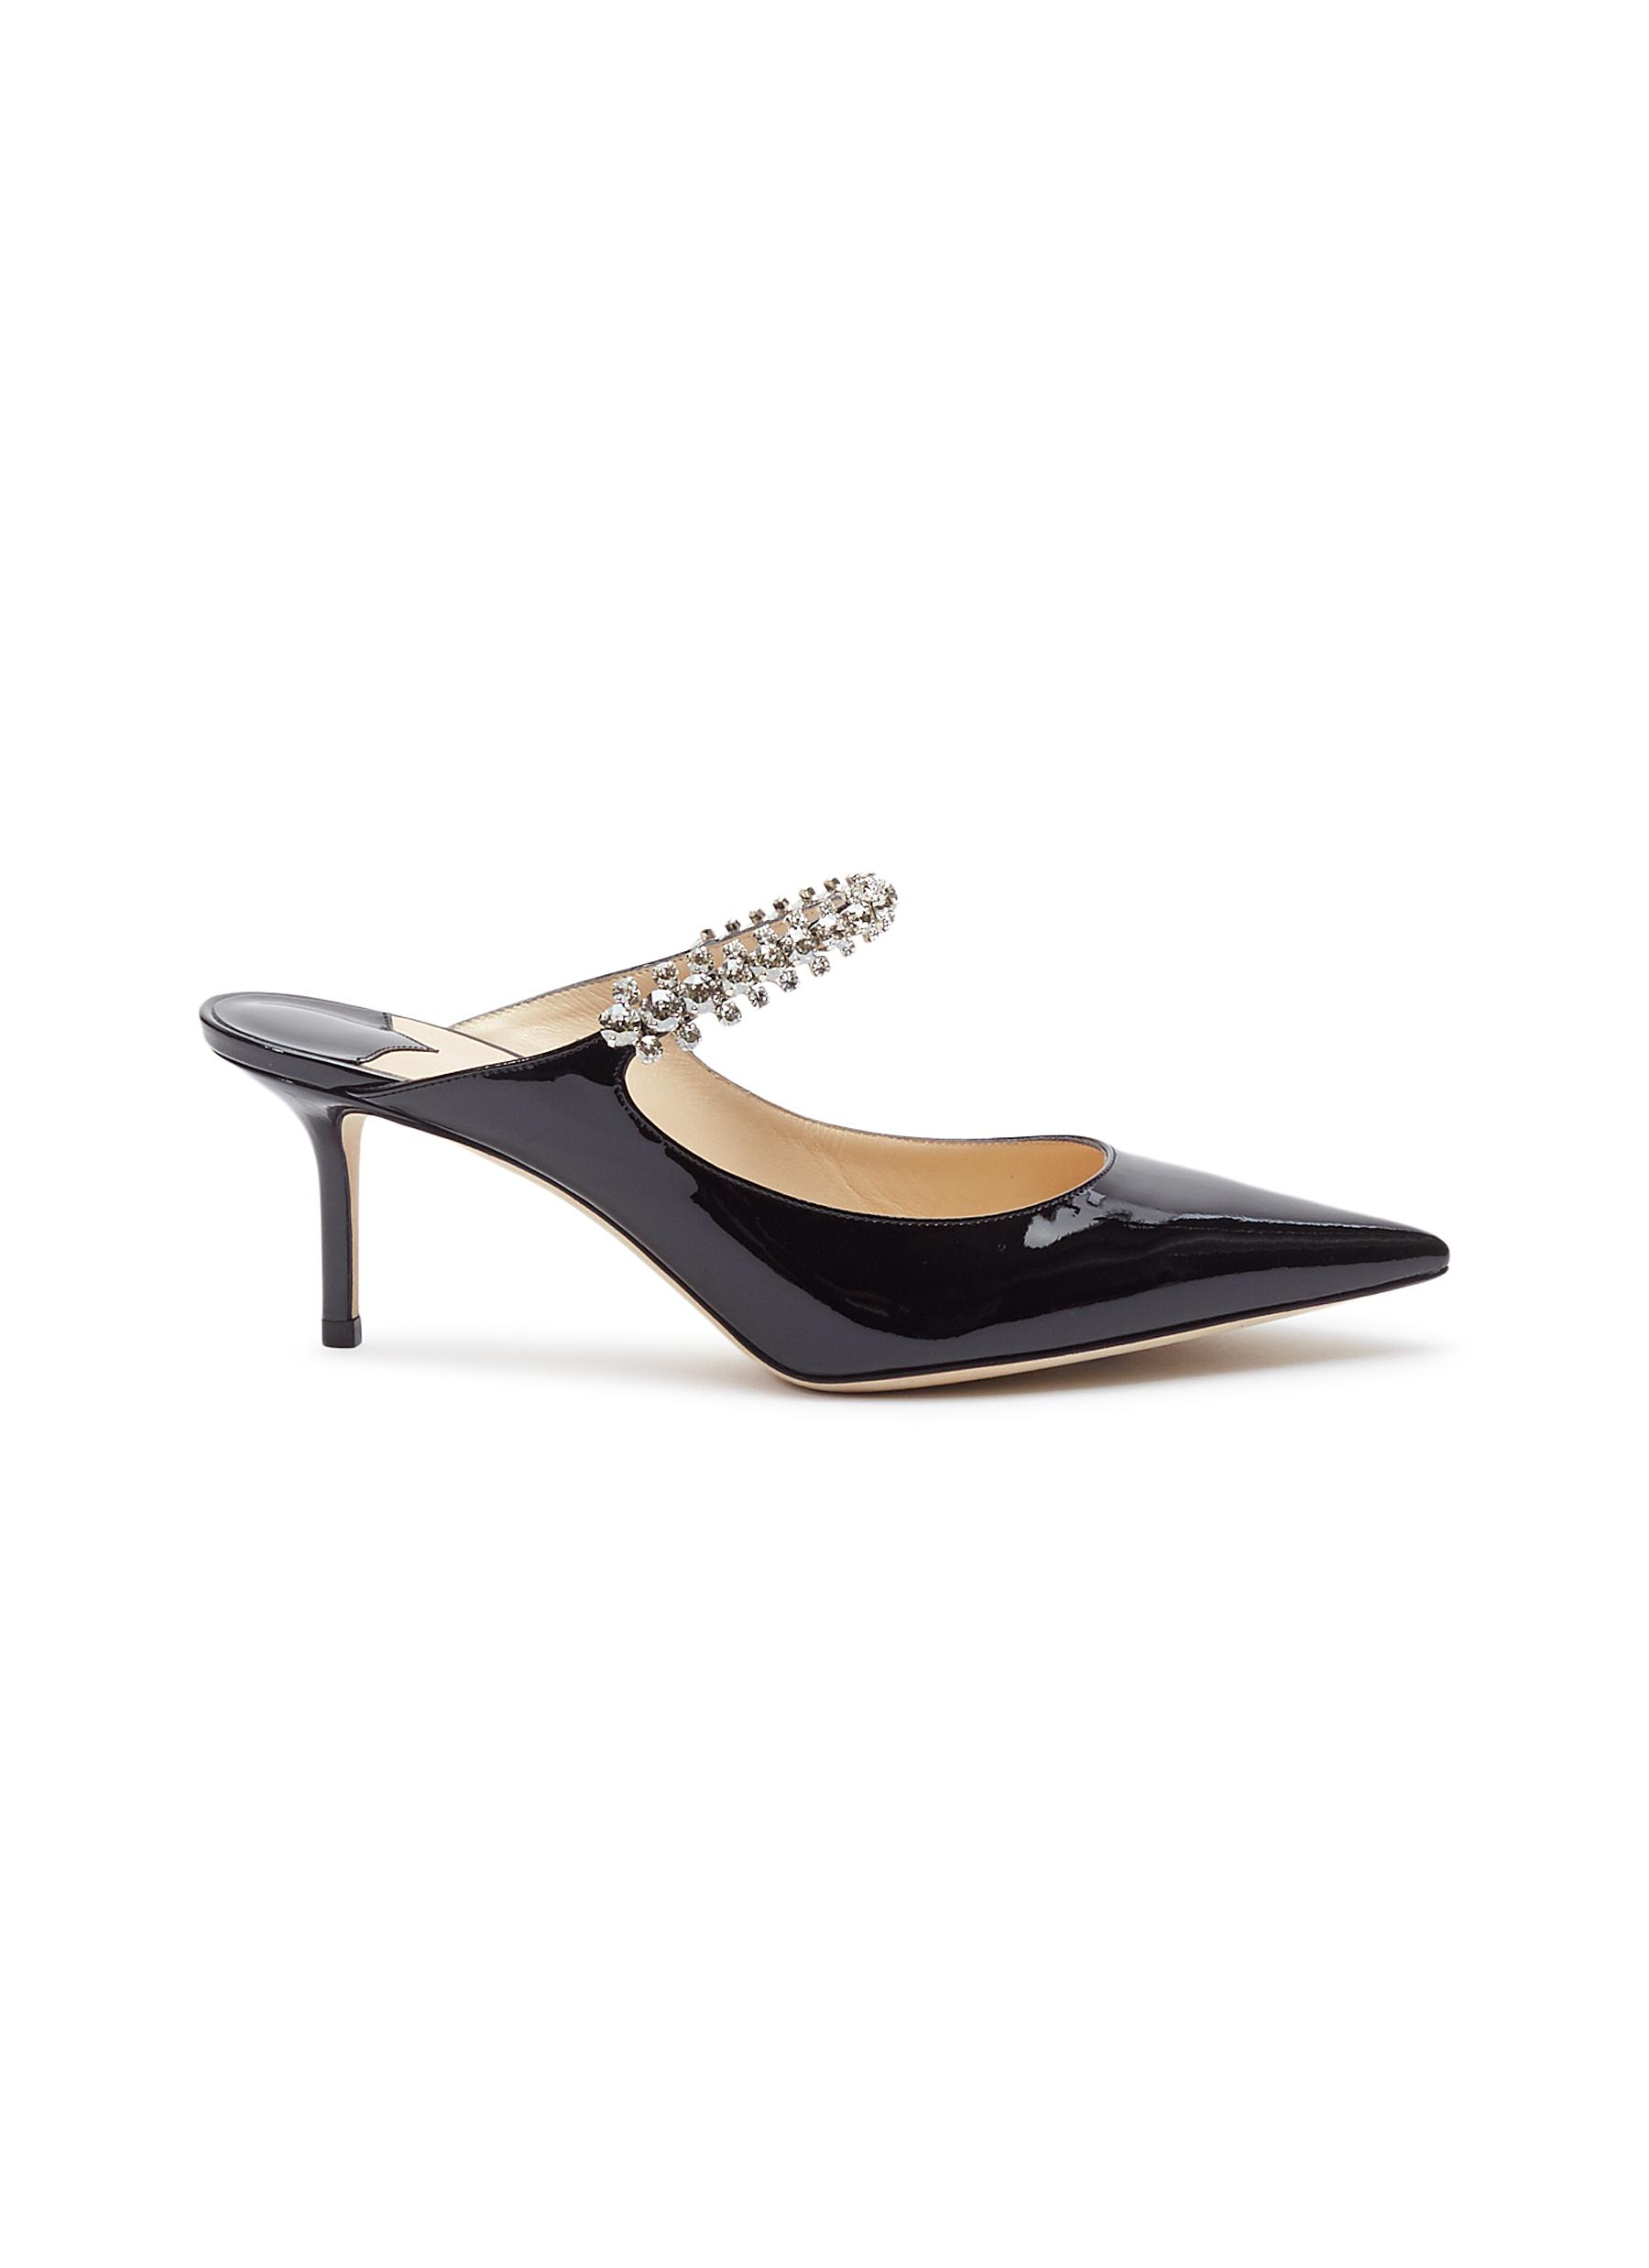 Bing 65 glass crystal strap patent leather mules by Jimmy Choo